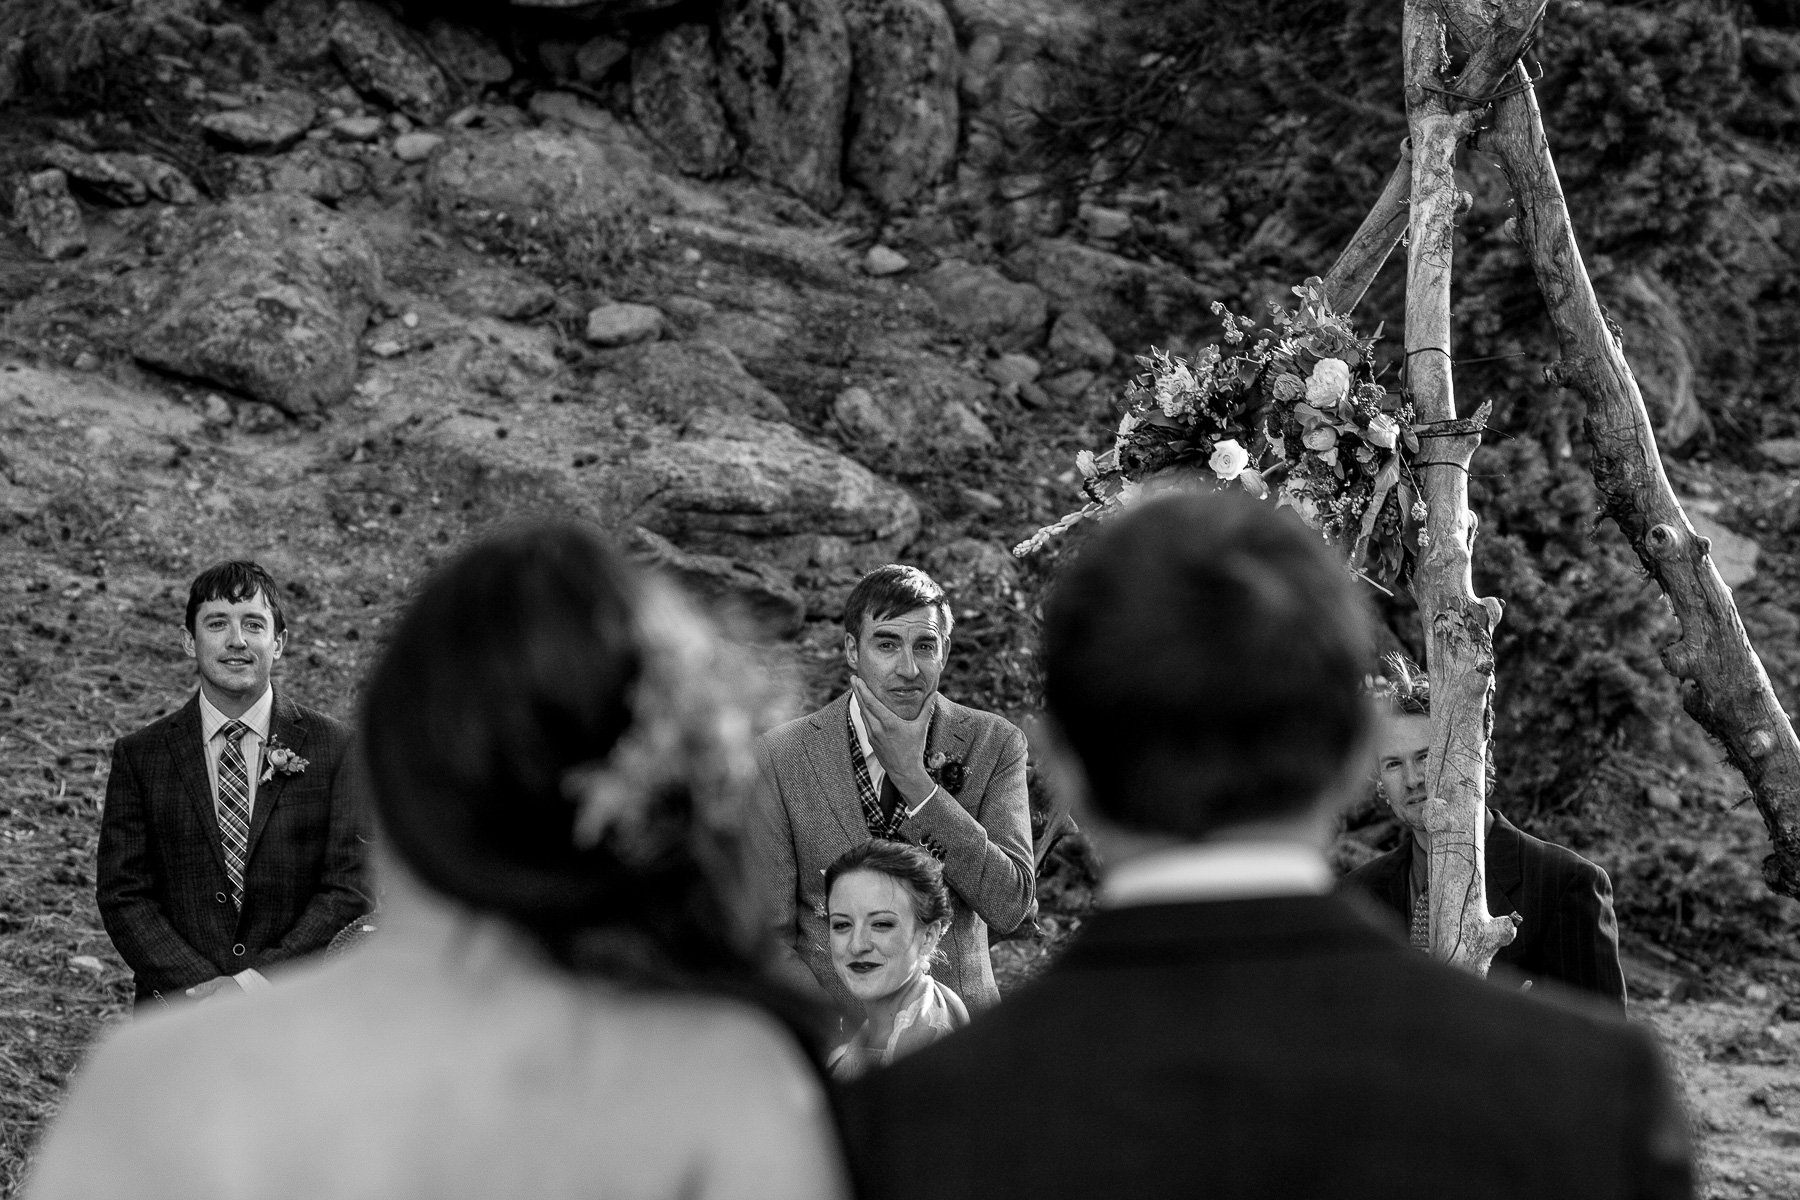 Looking through the shoulders of a bride and her father as she approaches her groom at the alter